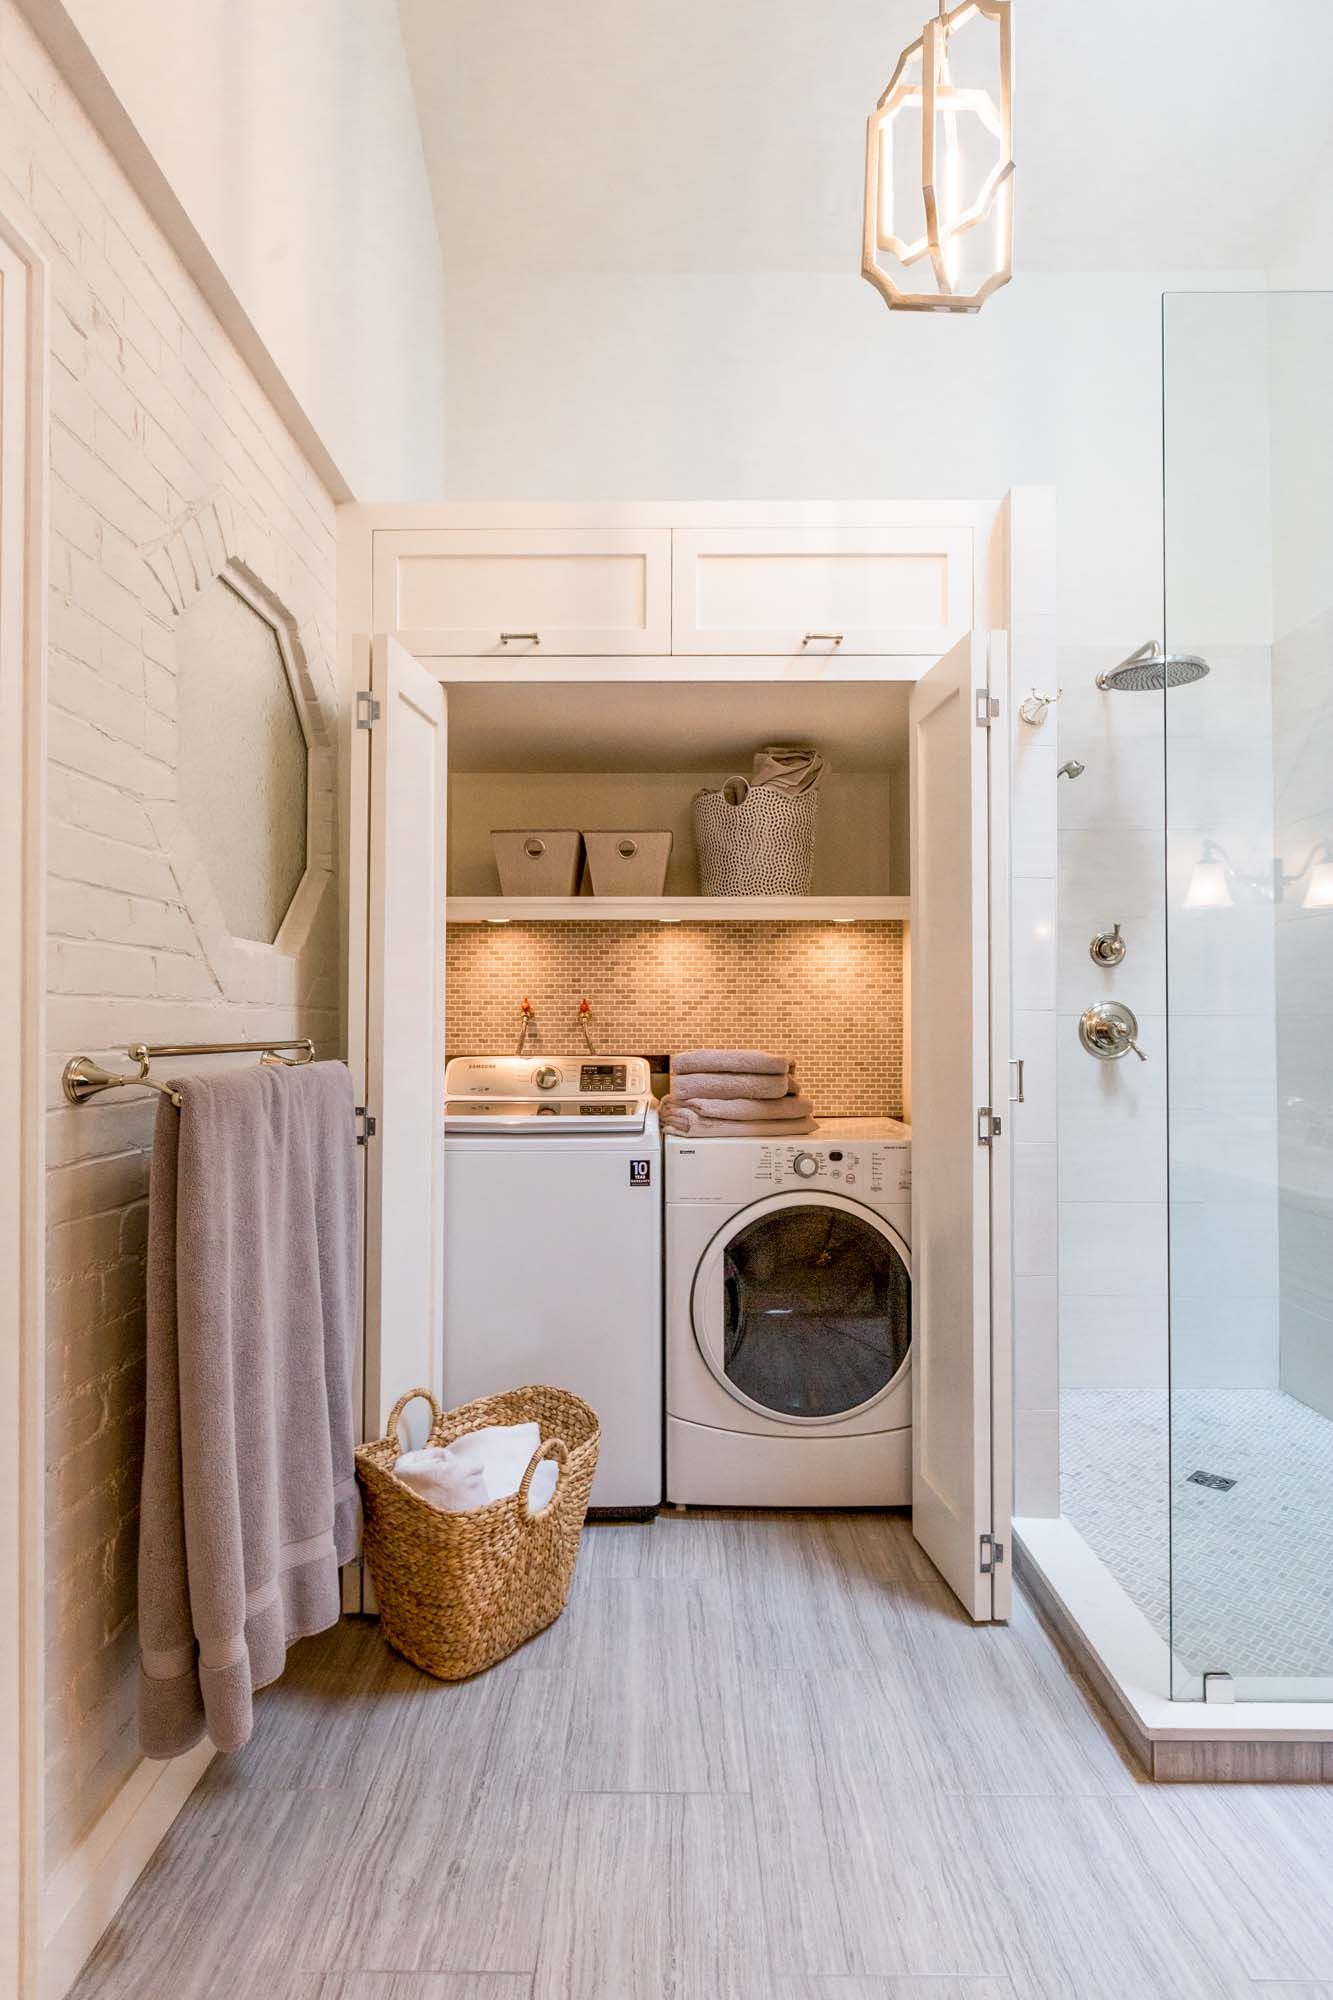 lovely laundry inside bathroom. Bathroom laundry combo plan ideas